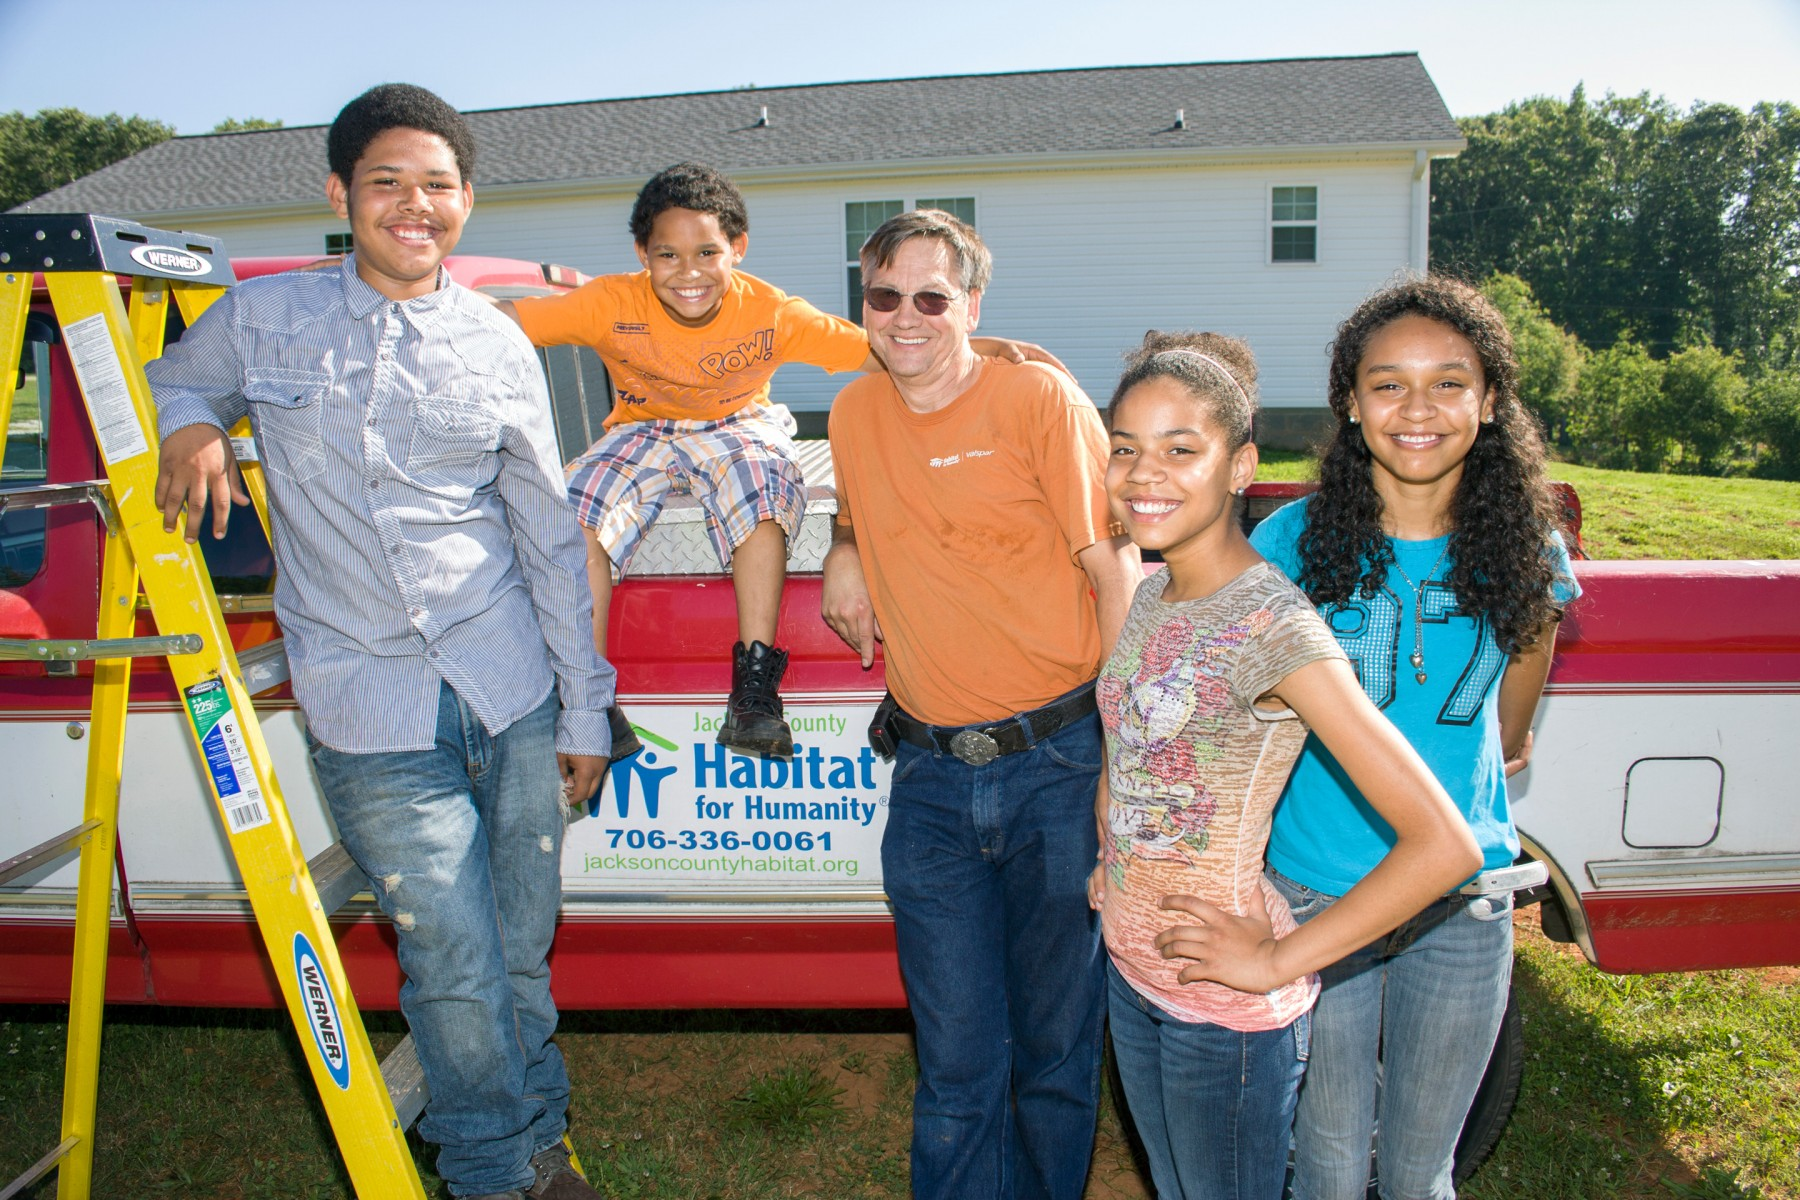 Jackson County Habitat for Humanity